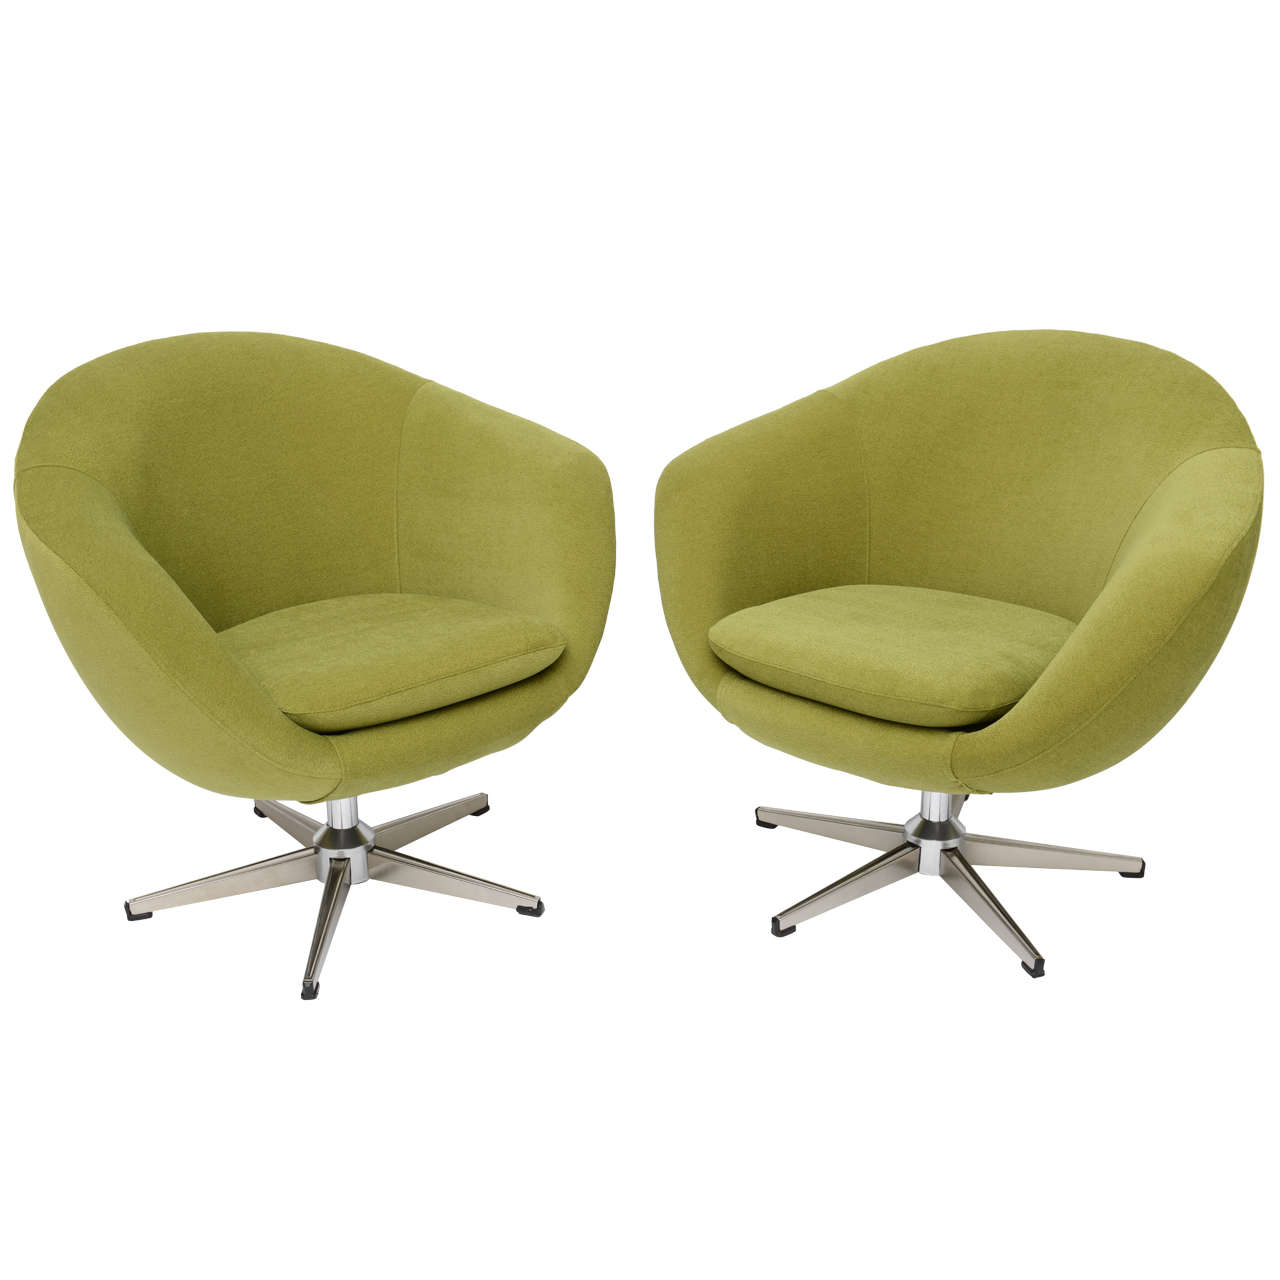 Classic swedish overman swivel egg chairs at 1stdibs - Second hand egg chair ...